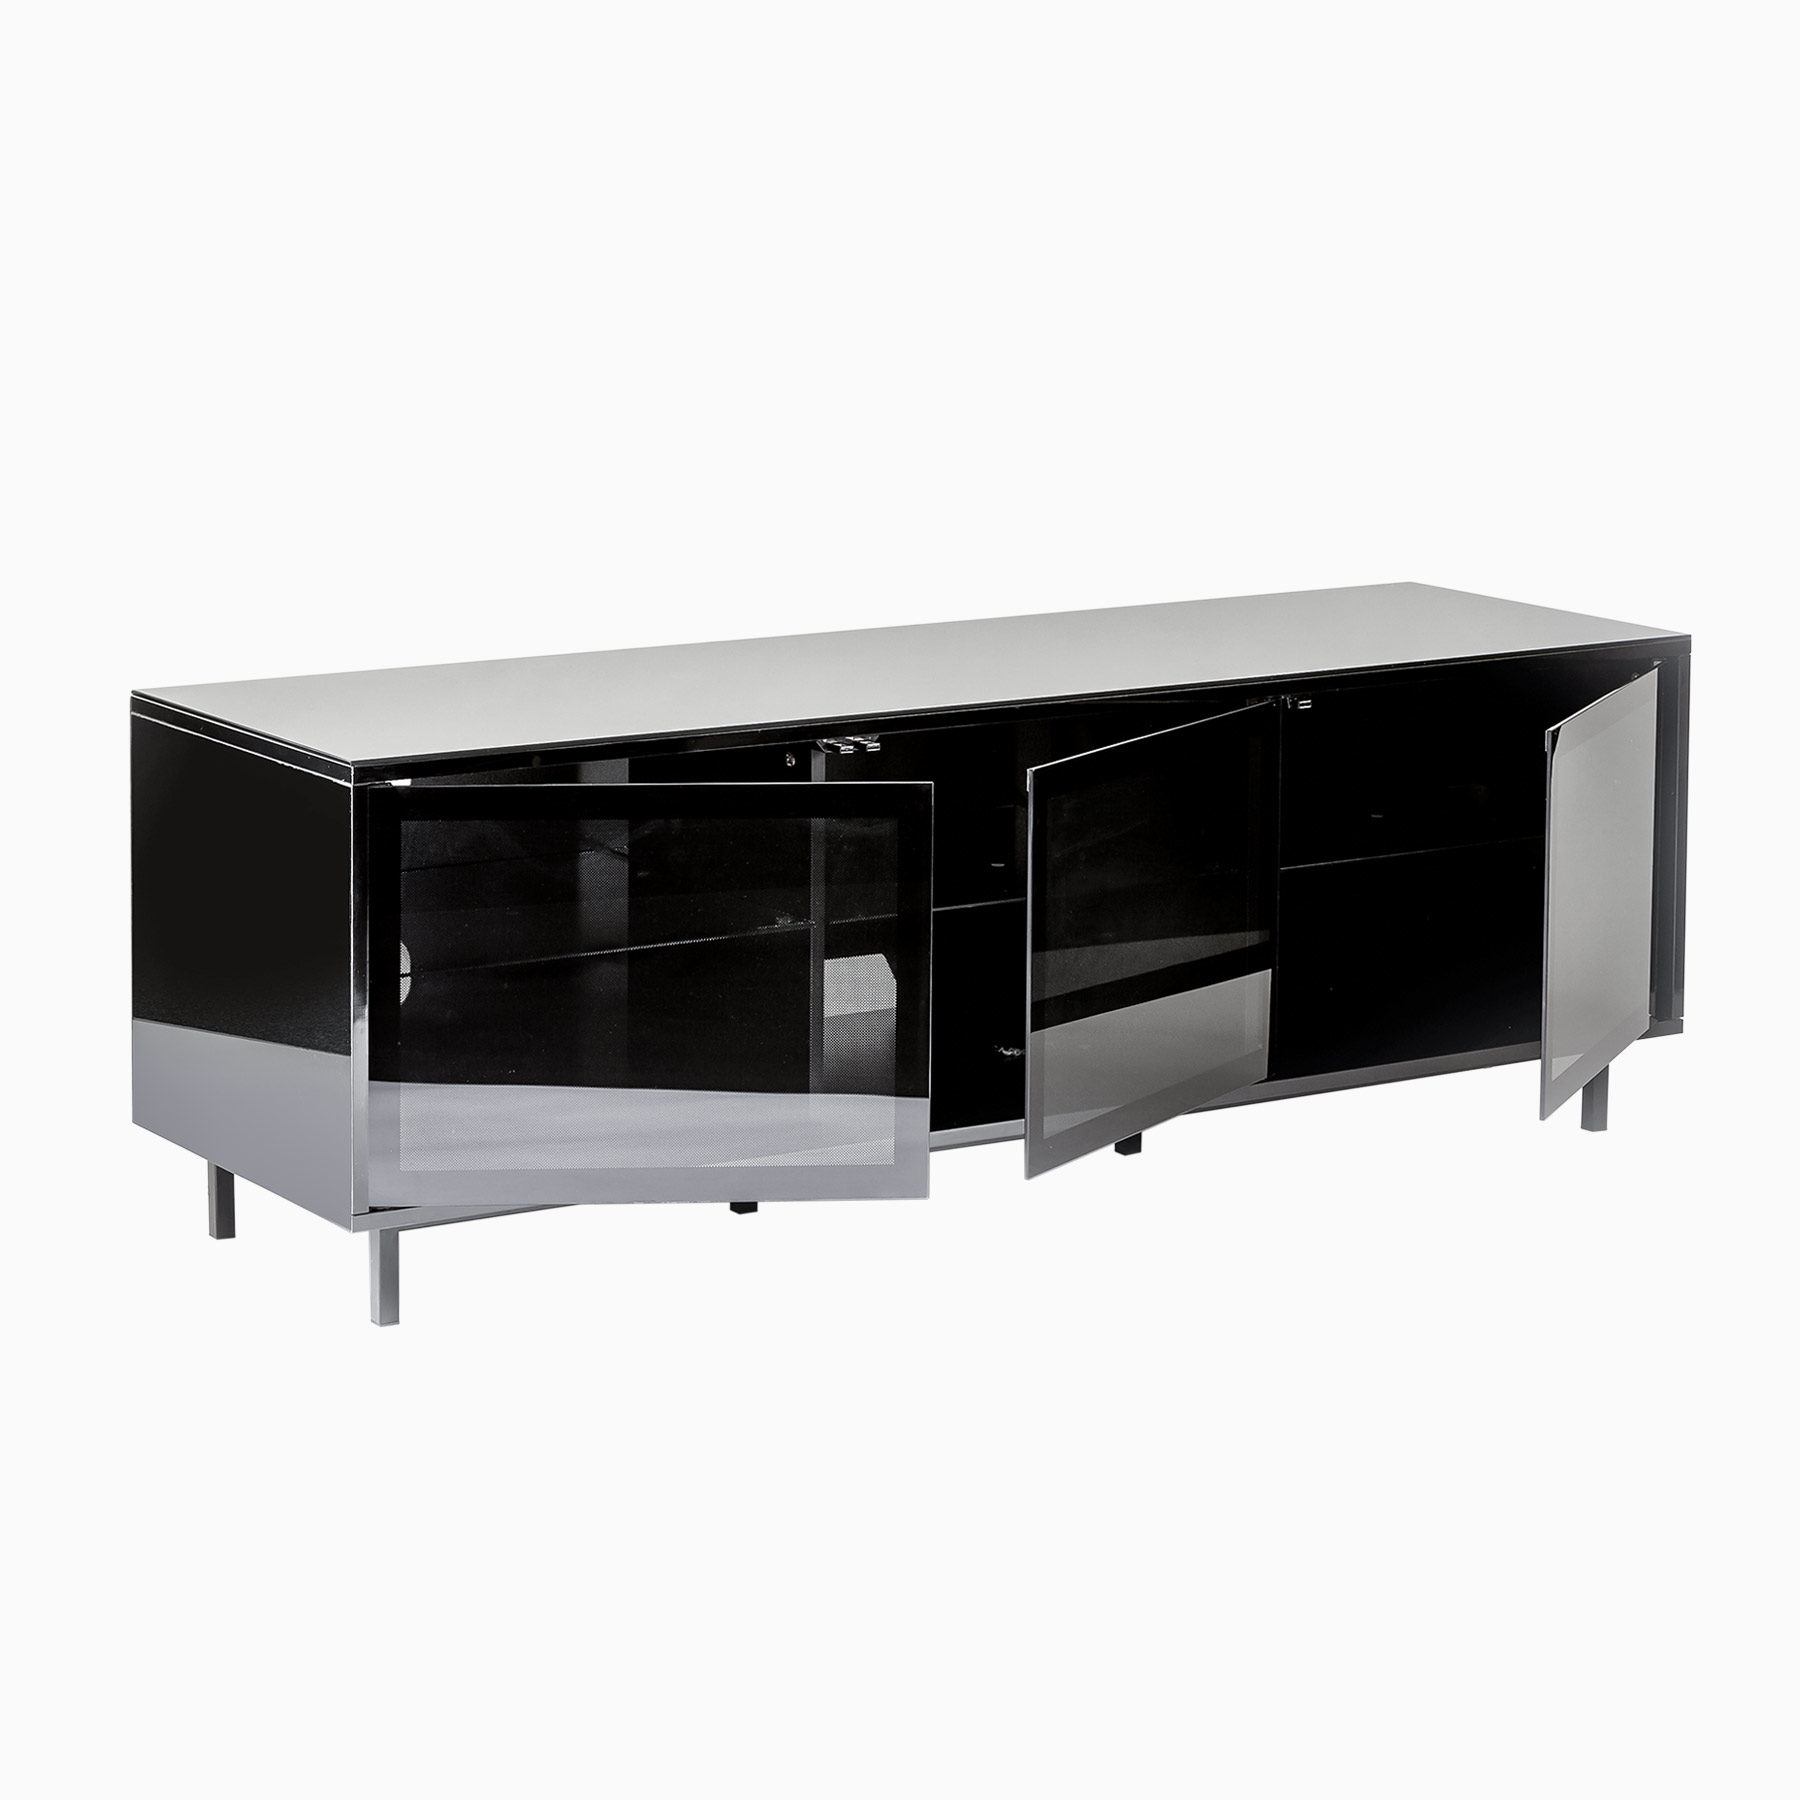 Inertia Stratos TDSETVC-1500BLK Black gloss TV cabinet for up to 65 inch screens